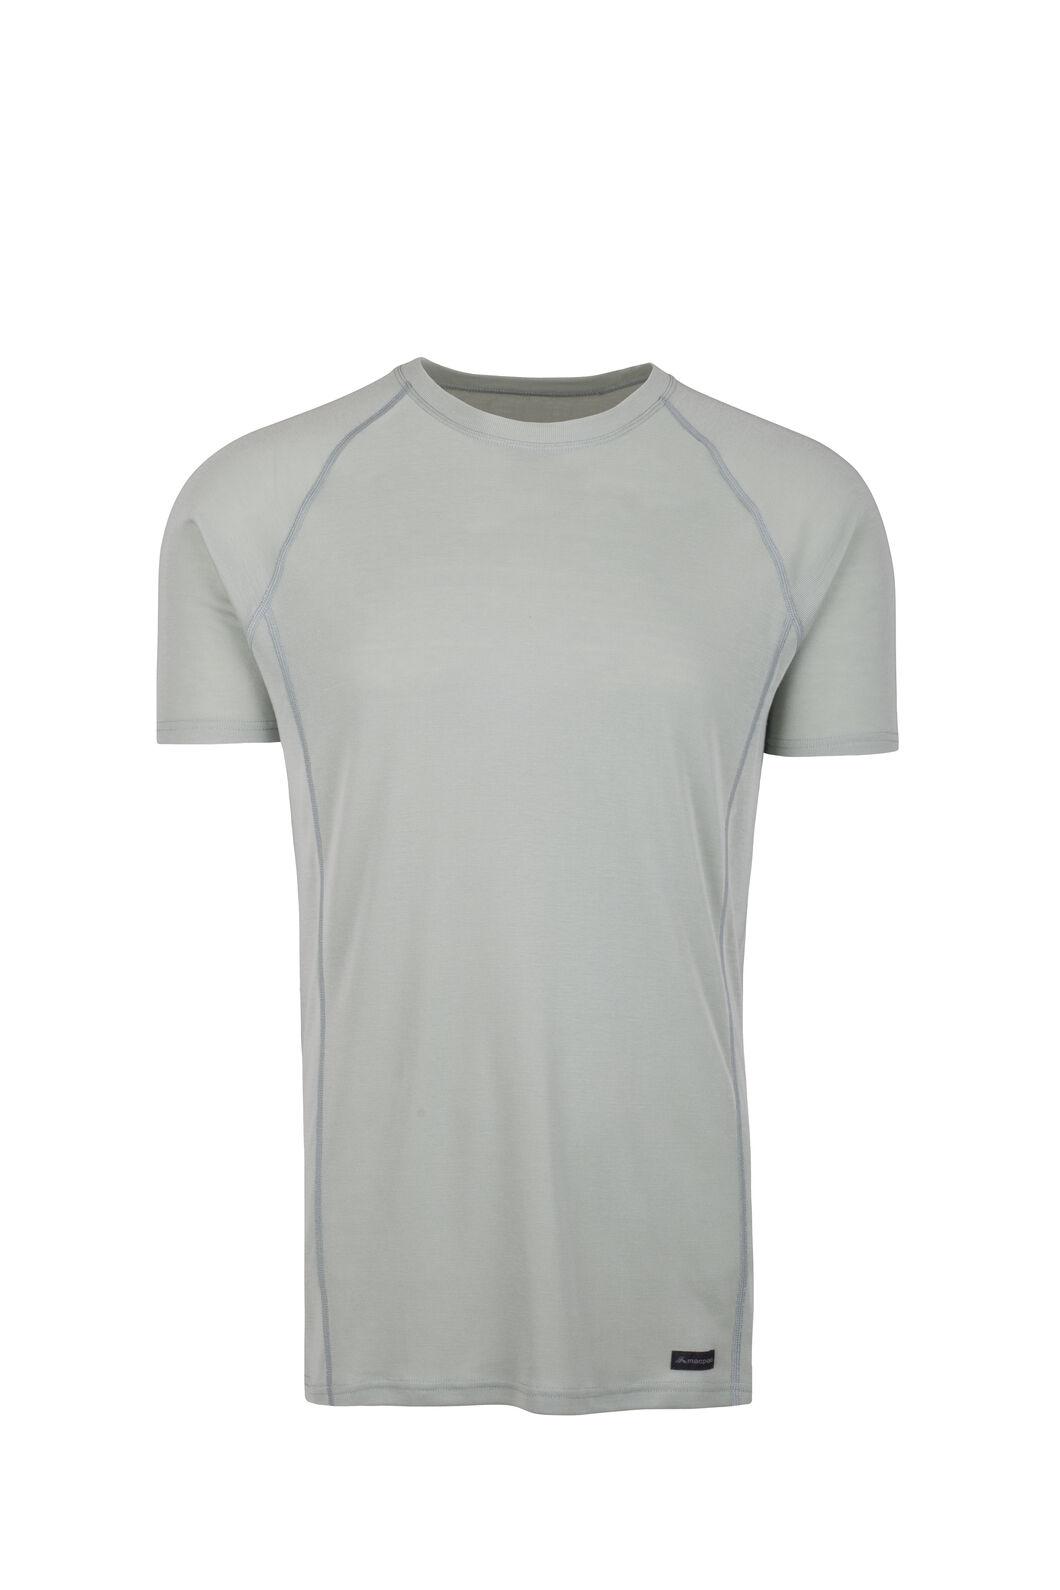 Macpac Geothermal Short Sleeve Top - Men's, Aqua Gray, hi-res